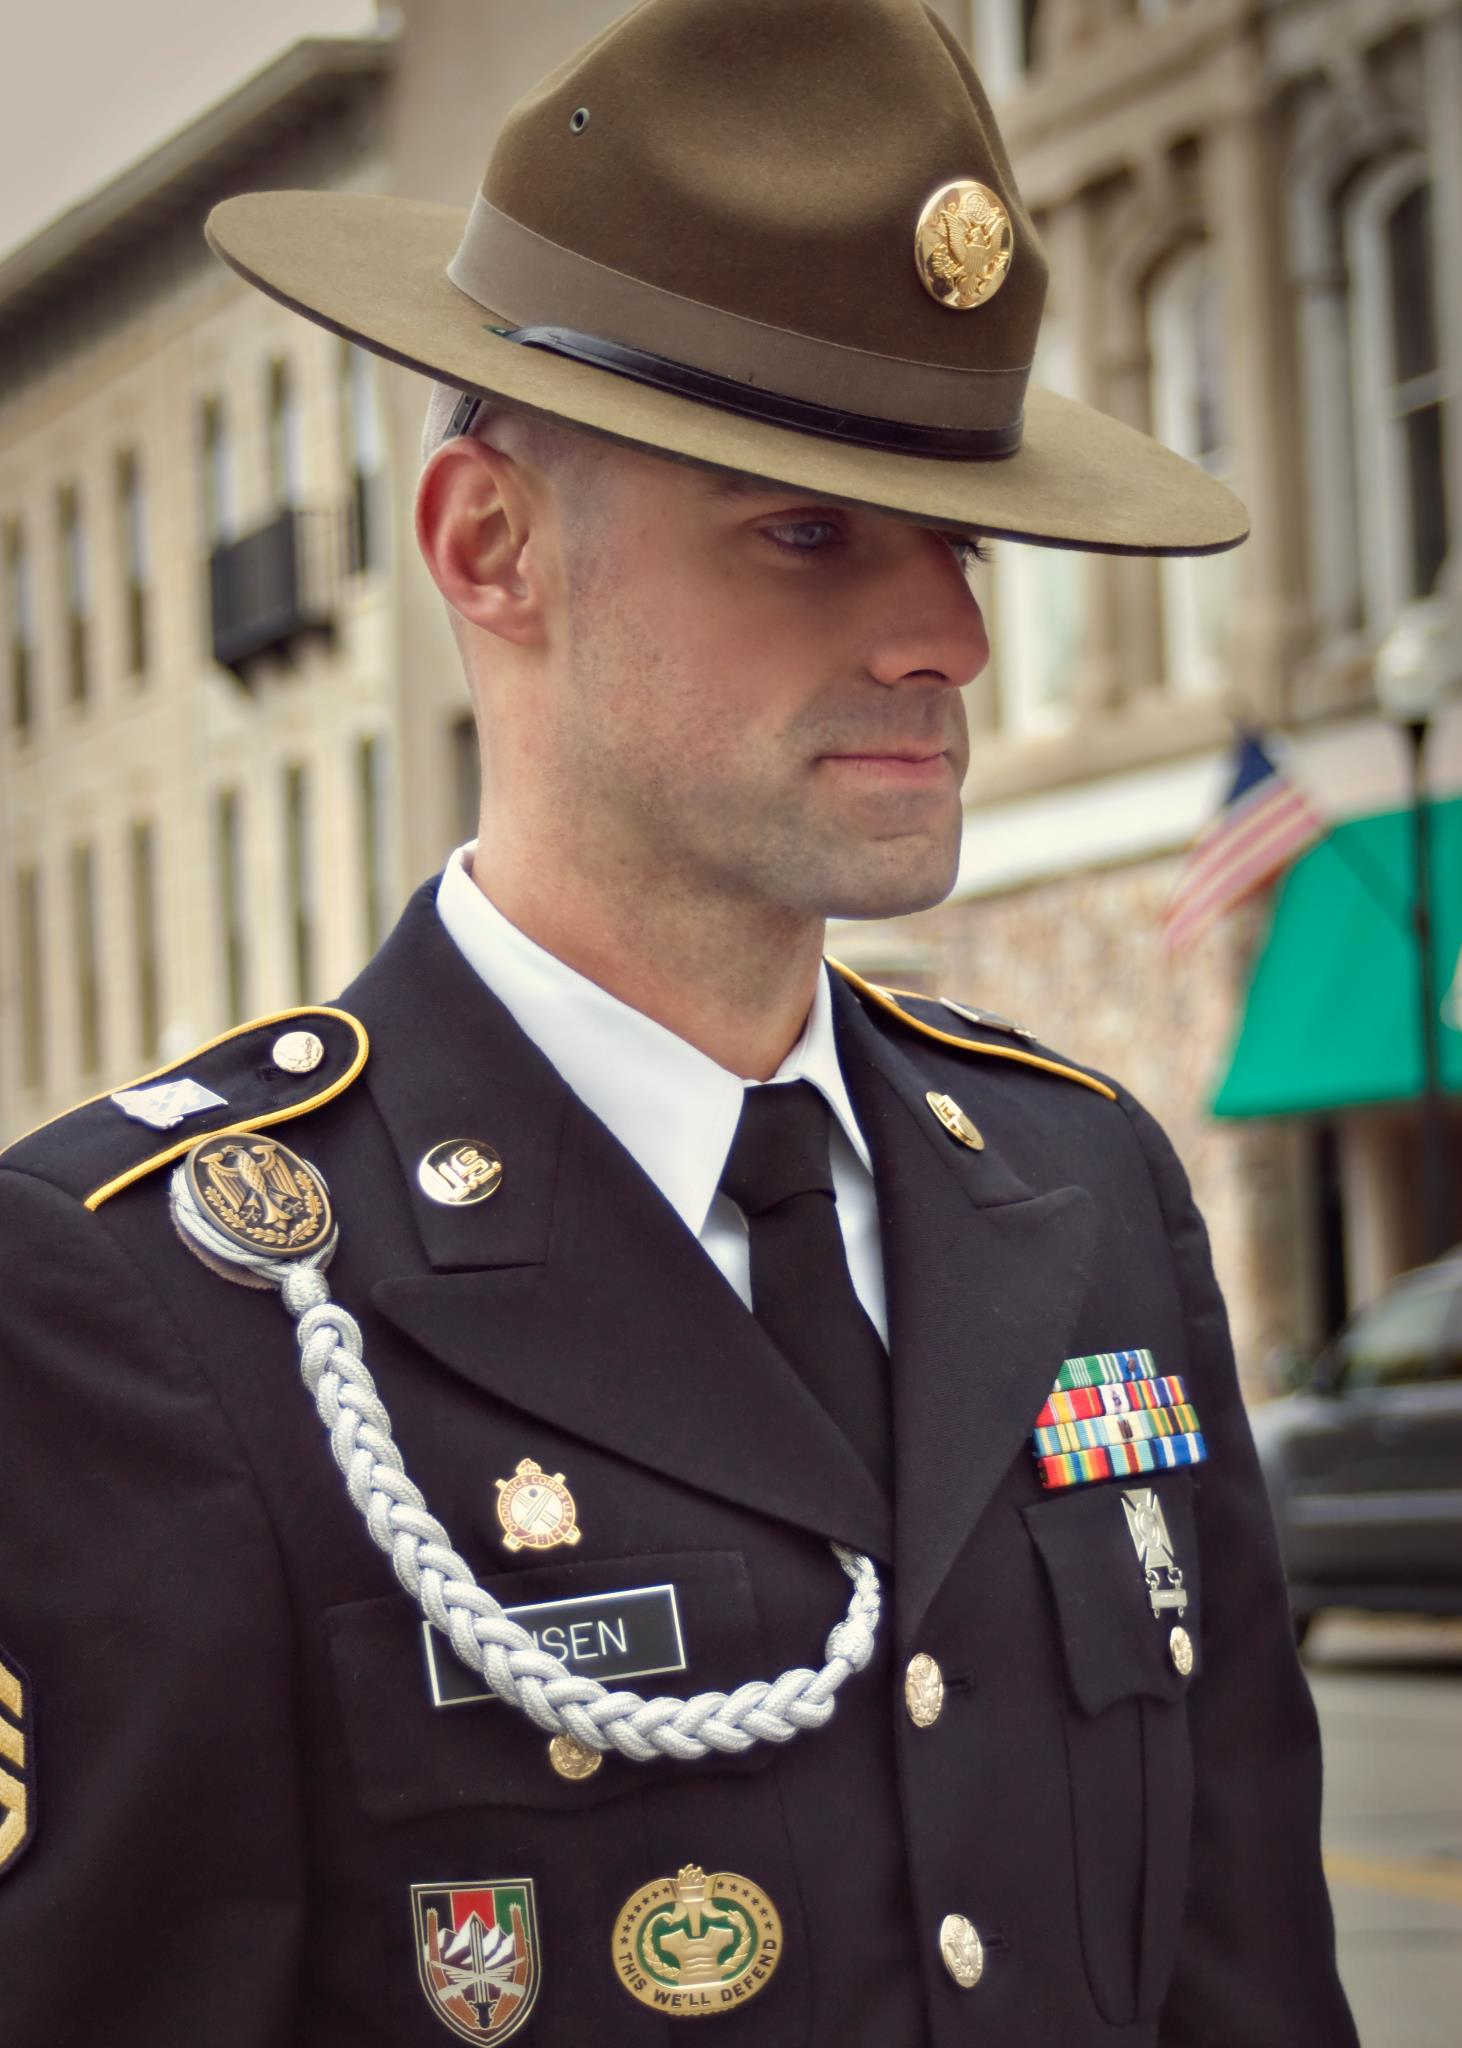 DS Busen in the 2011 Veteran s Drill Sergeant Hat